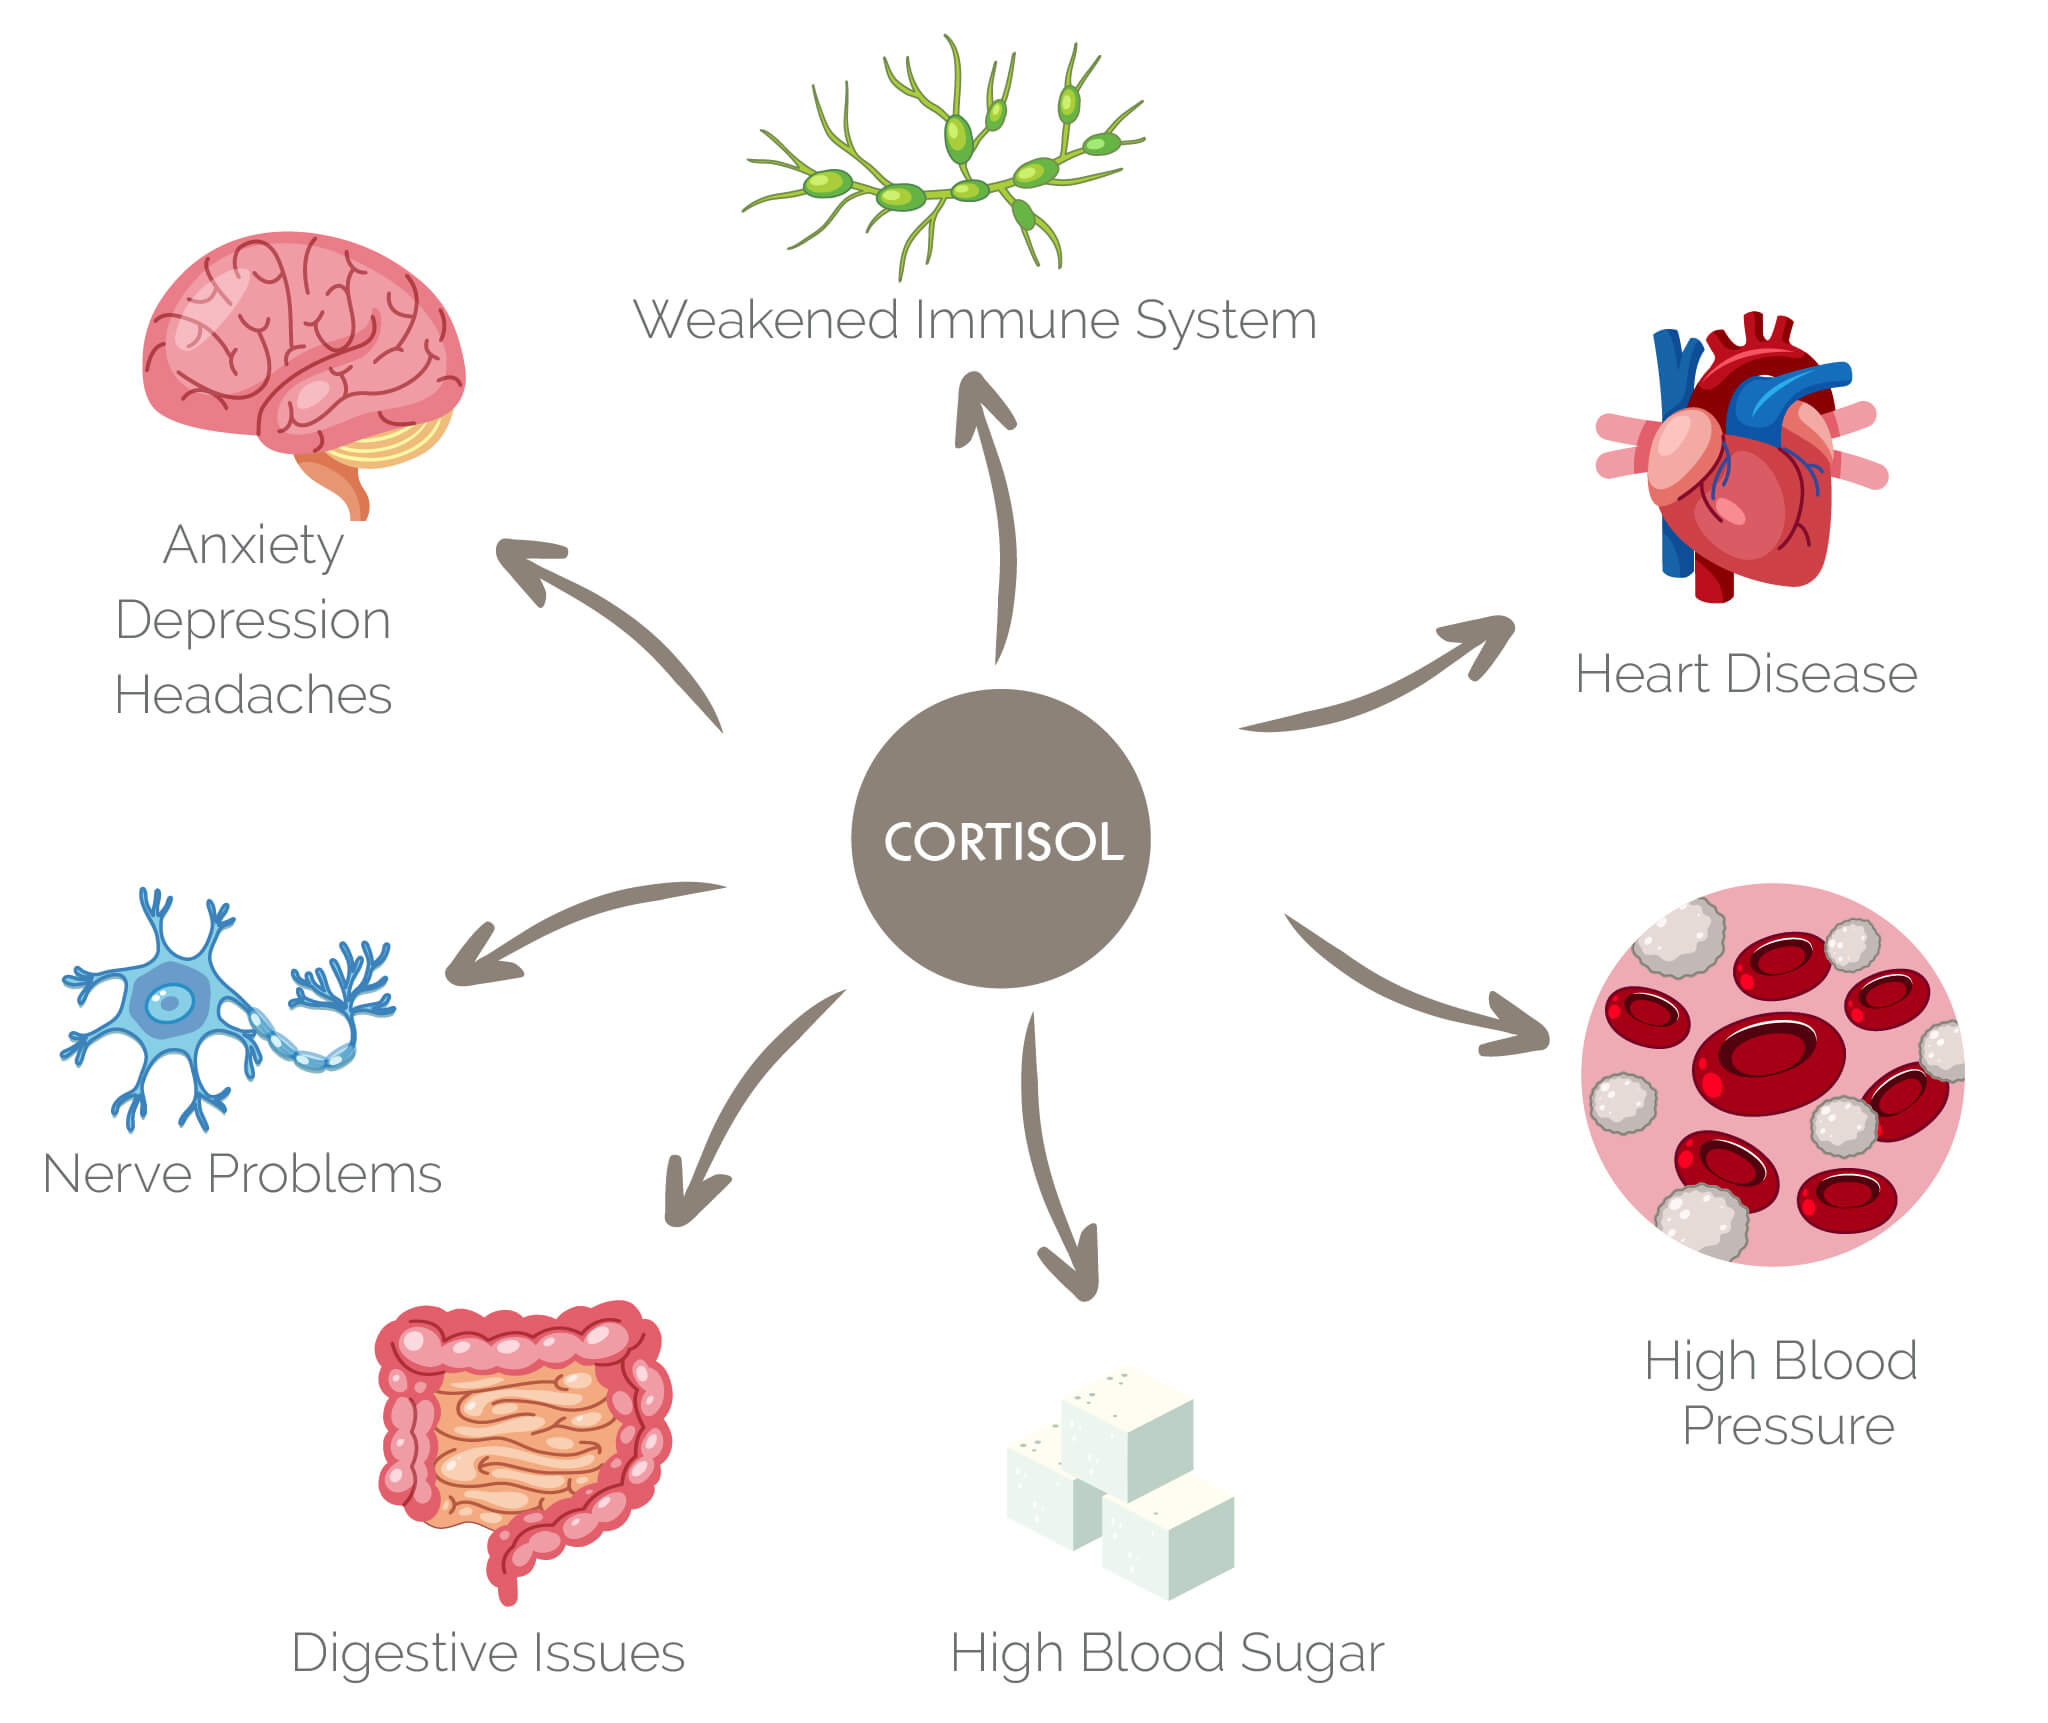 Infographic on cortisol and the stress response system